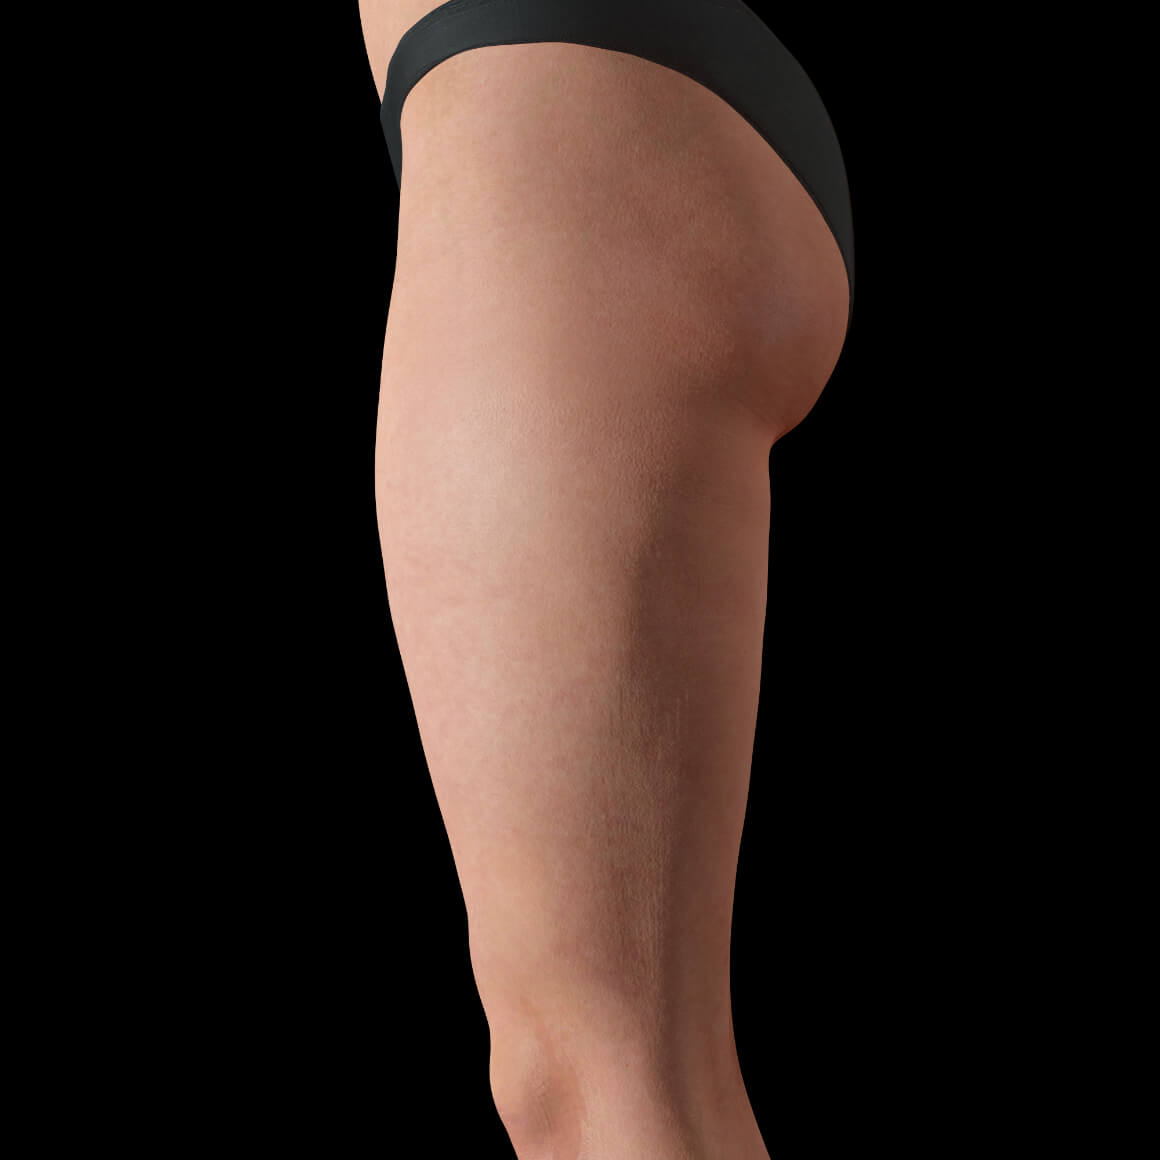 Female patient from Clinique Chloé positioned sideways after TightSculpting laser treatments for cellulite treatment